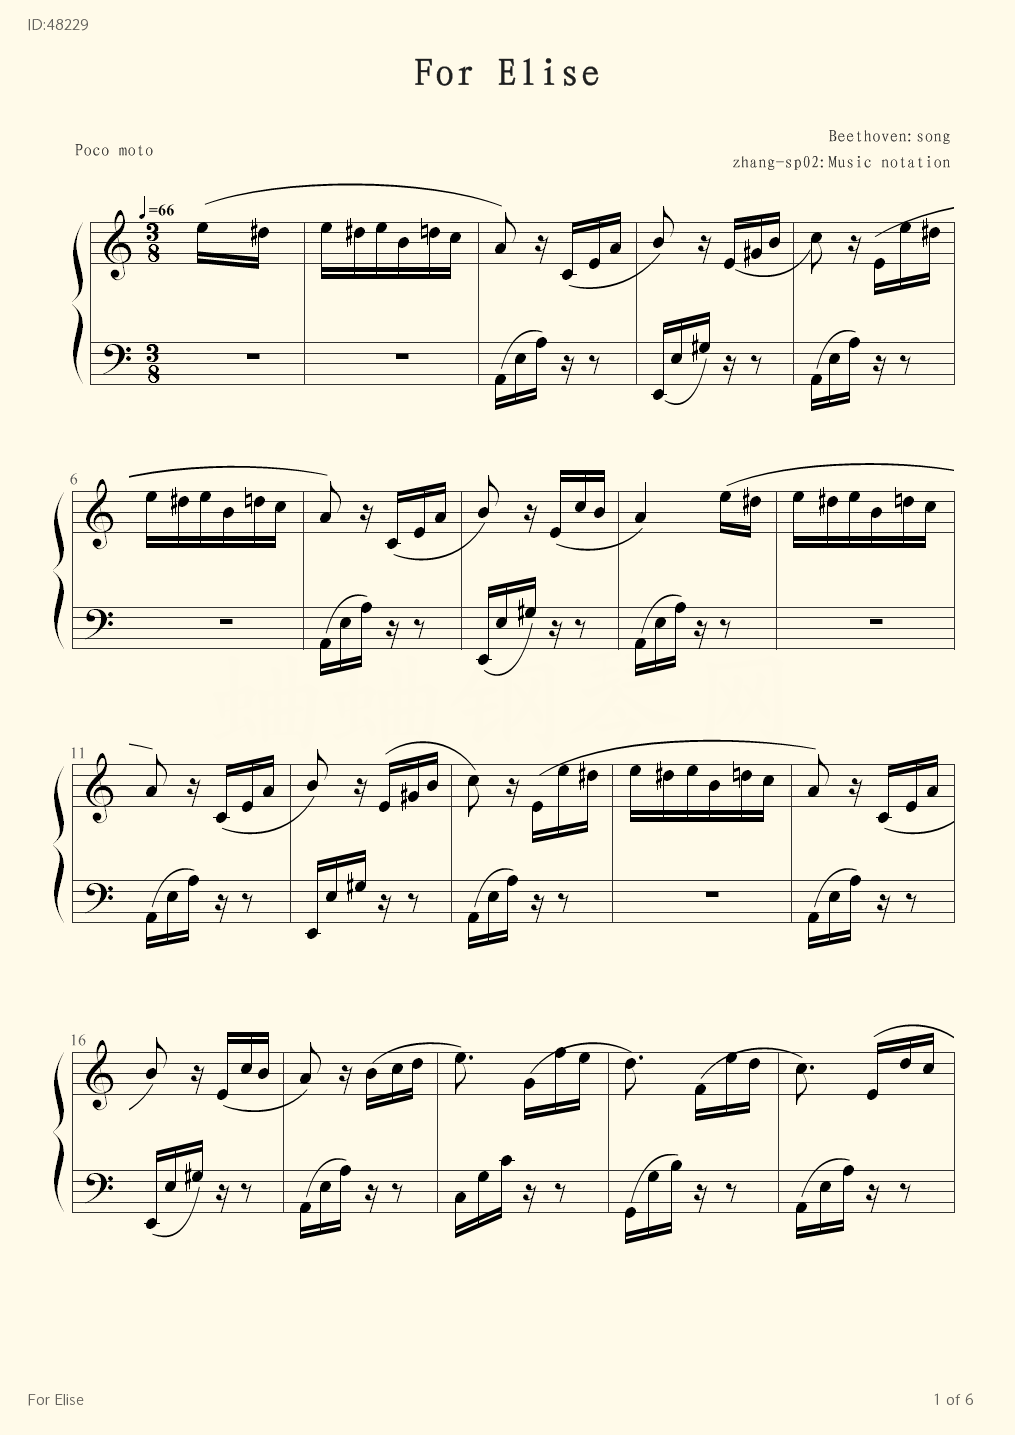 For Elise - Beethoven - first page